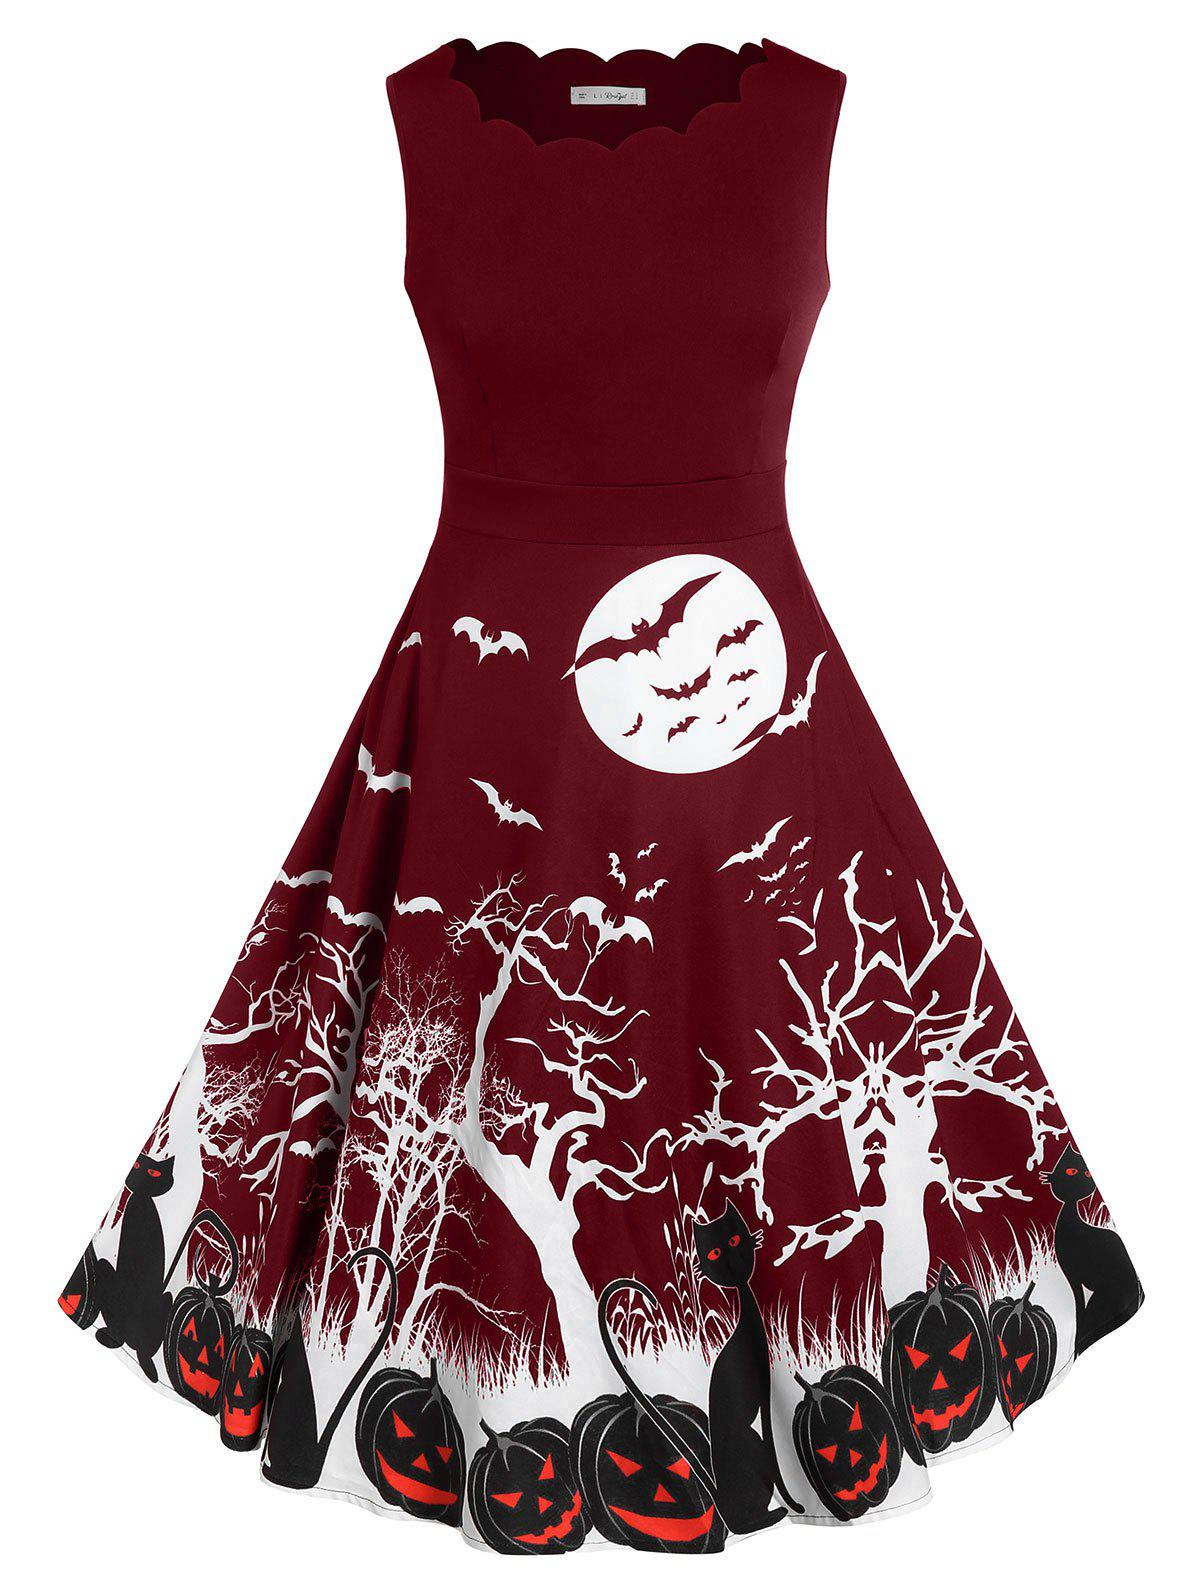 Plus Size Bat Pumpkin Print Halloween Vintage Dress - RED WINE 3X